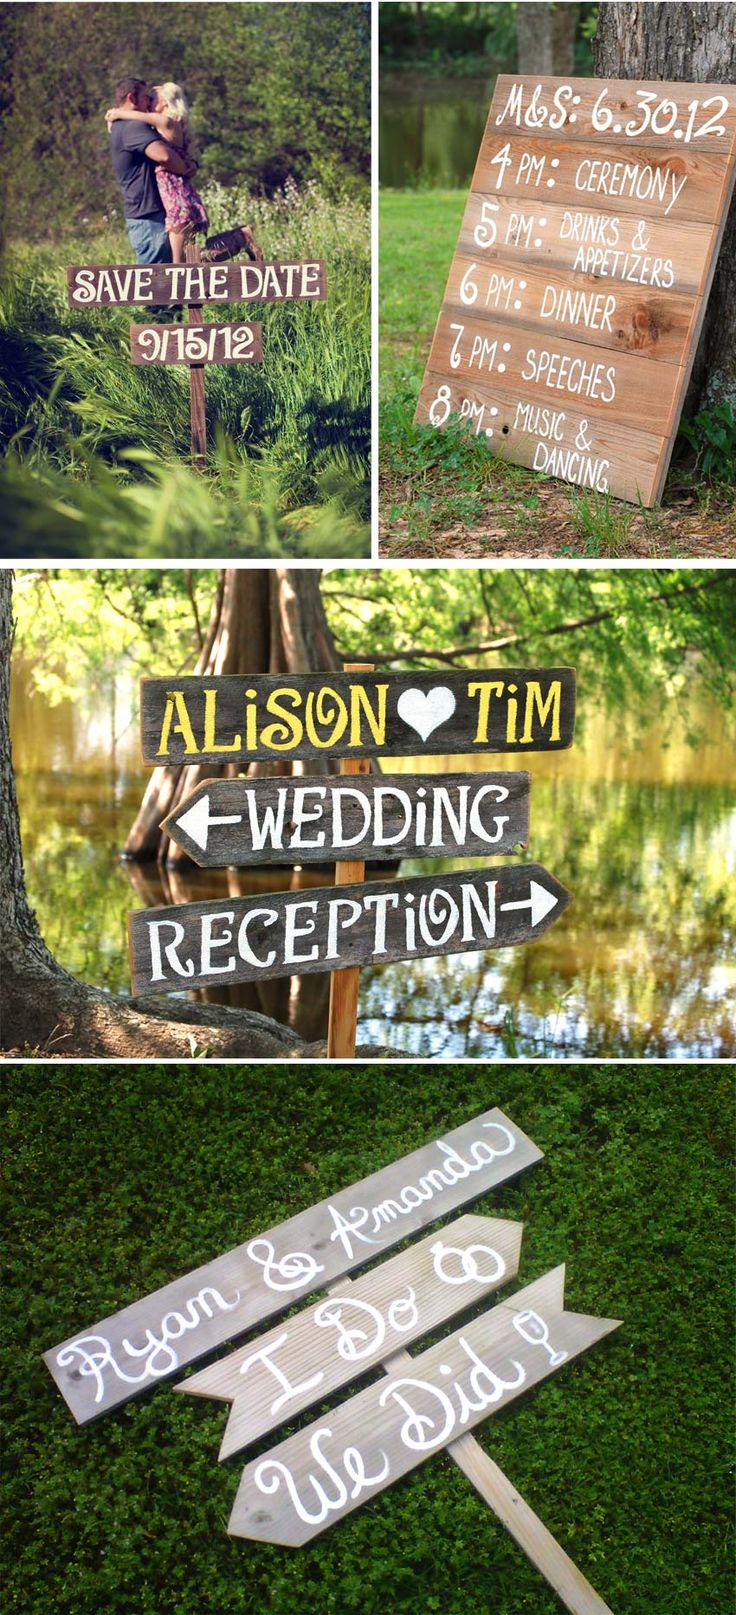 Cute Timeline Sign  I Do  Pinterest. Ahead Signs. Wall Mount Signs Of Stroke. Construction Vehicle Signs Of Stroke. Dear Stressed Signs Of Stroke. Botanic Garden Signs Of Stroke. Rhombus Signs Of Stroke. Instagram App Signs Of Stroke. Tea Party Signs Of Stroke